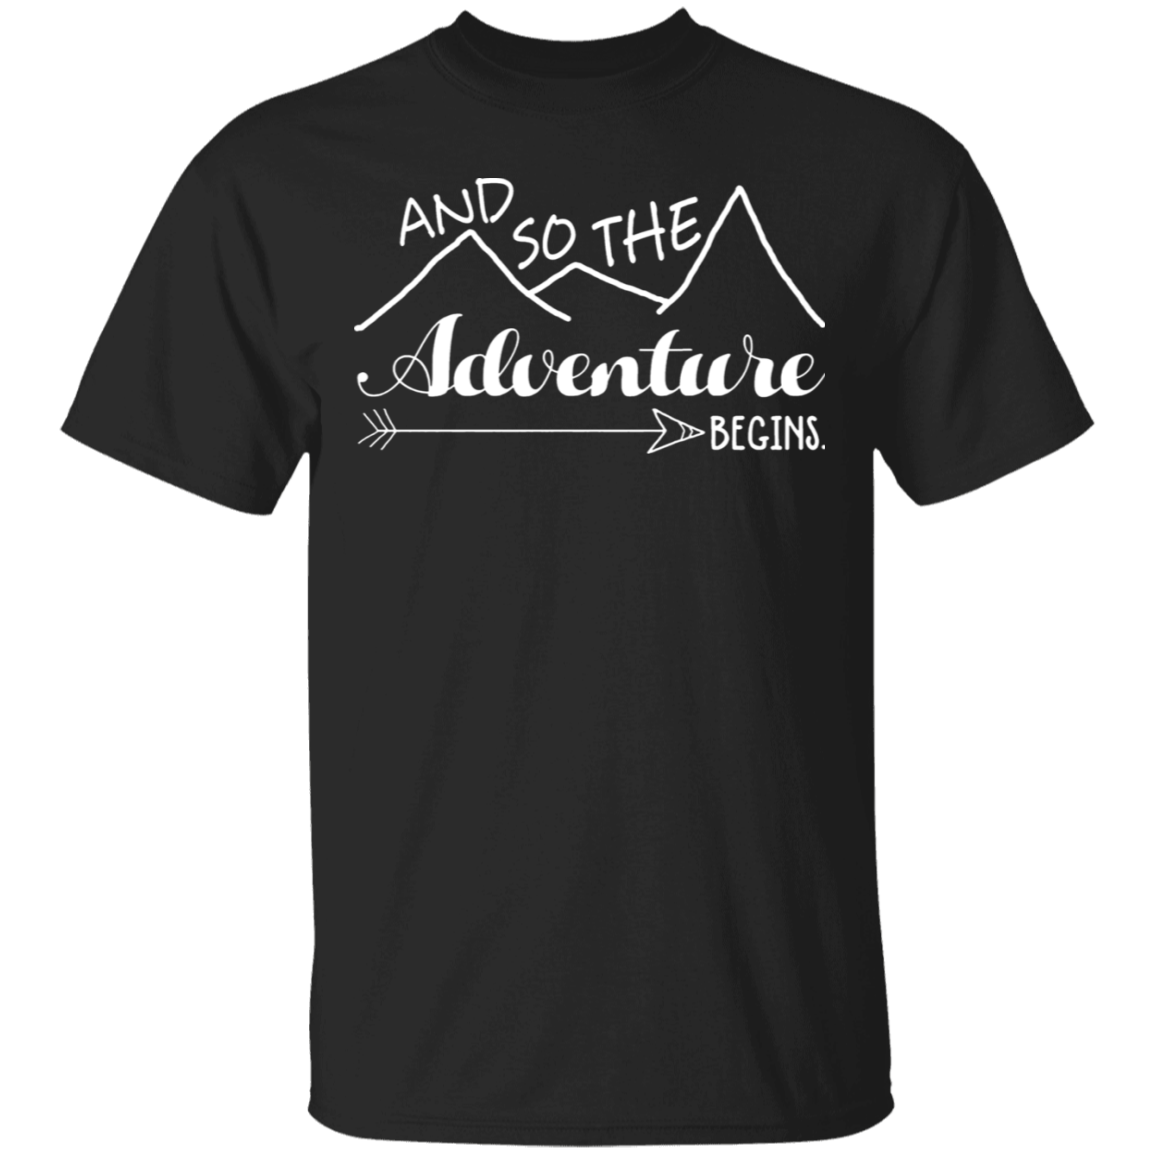 Camper Love Camping Gift, And So The Adventure Begin T-Shirt